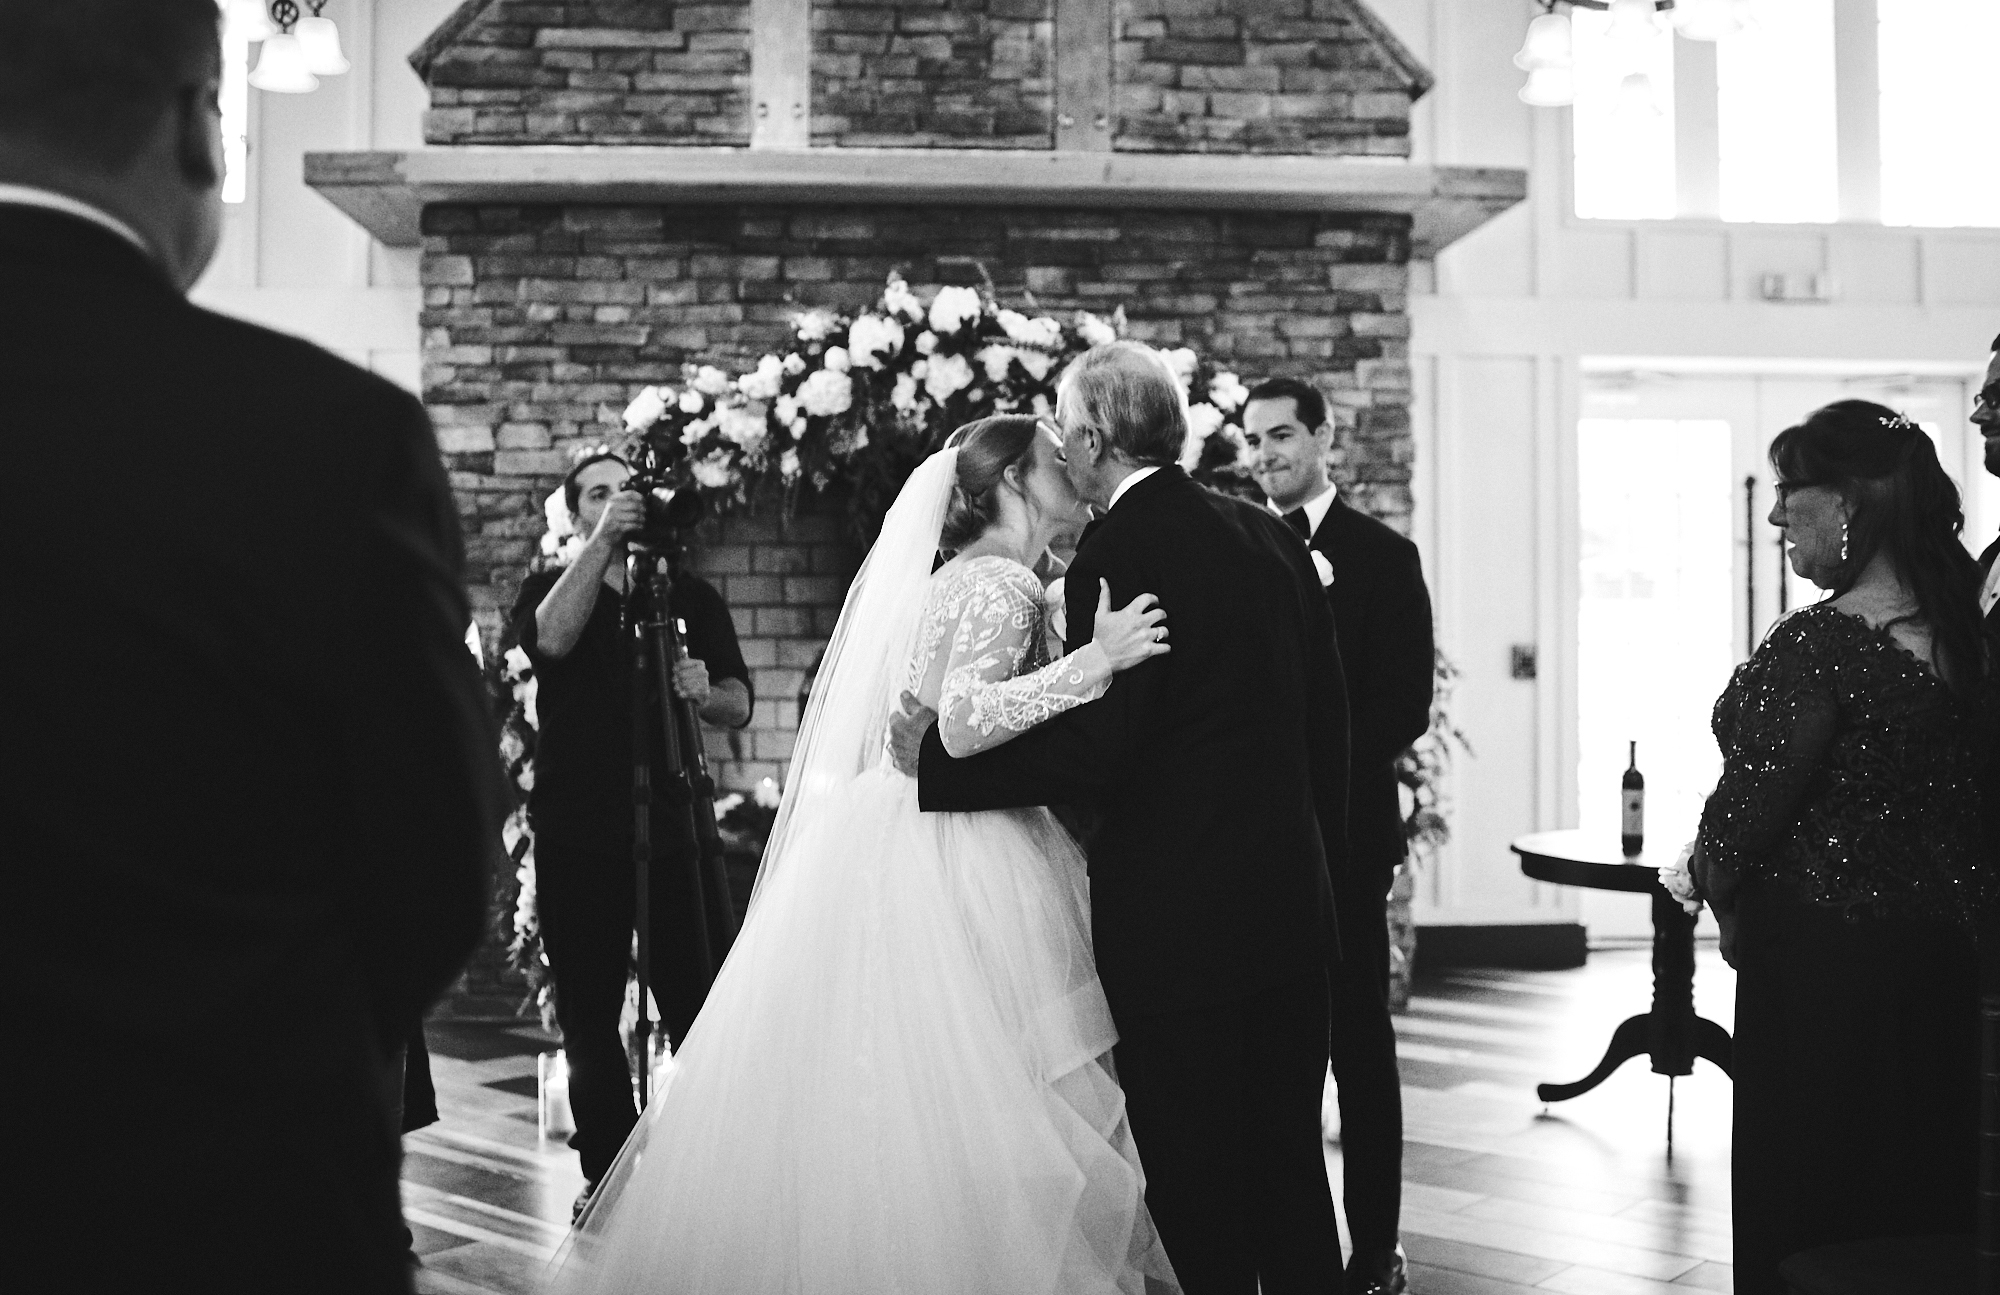 181027_TheRylandInnFallWeddingPhotography_NJWeddingPhotographer_By_BriJohnsonWeddings_0099.jpg